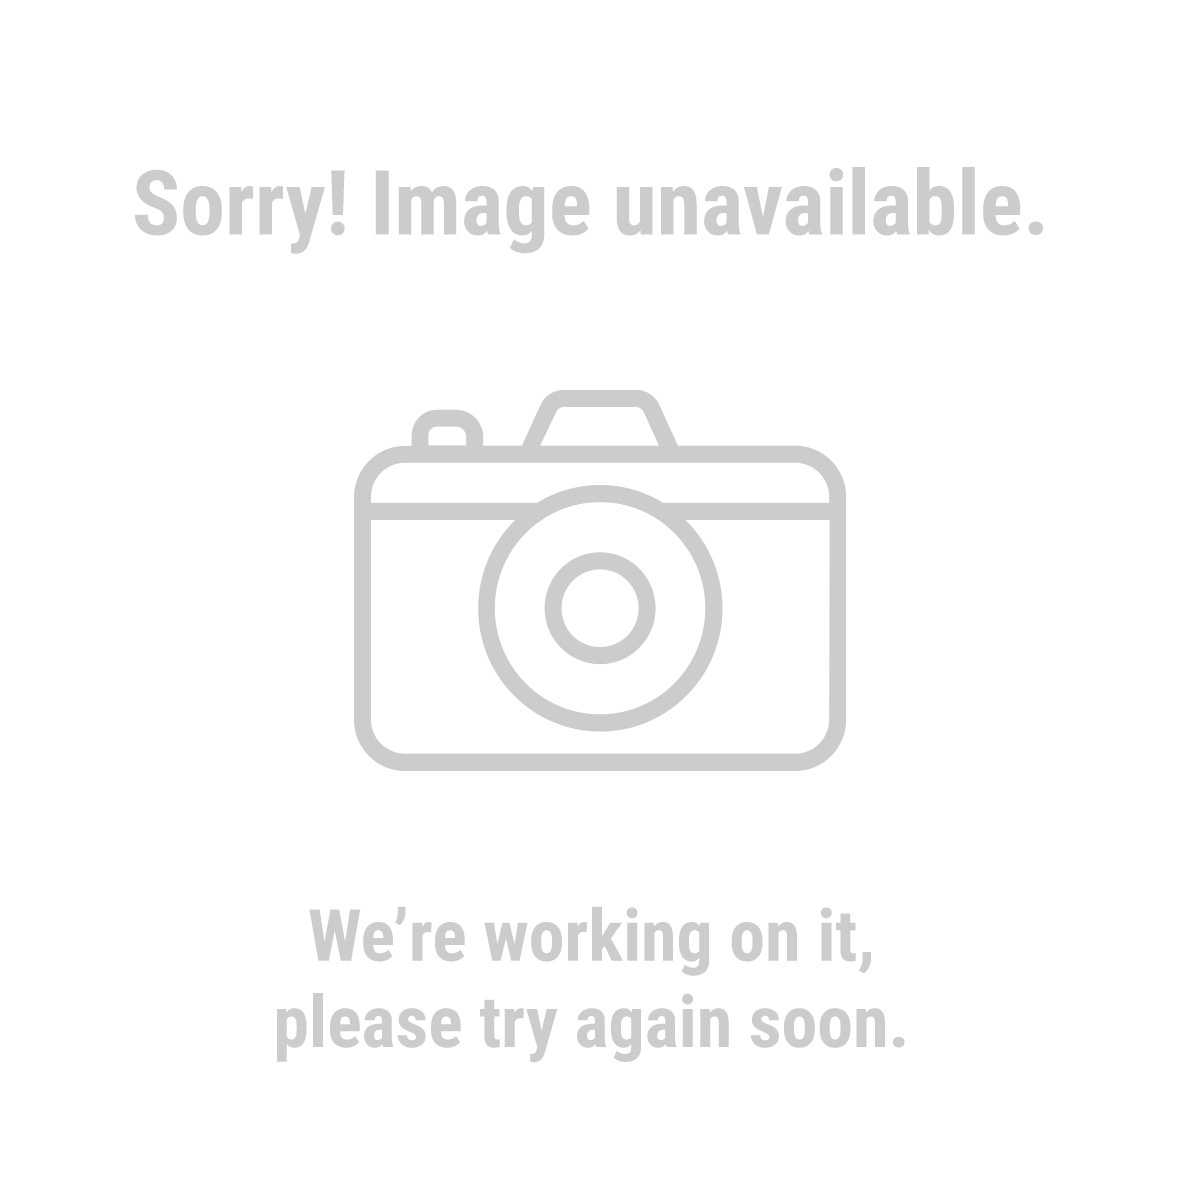 "Pipe Clamp - 3/4"" Cast Iron Pipe Clamps,2 Piece"